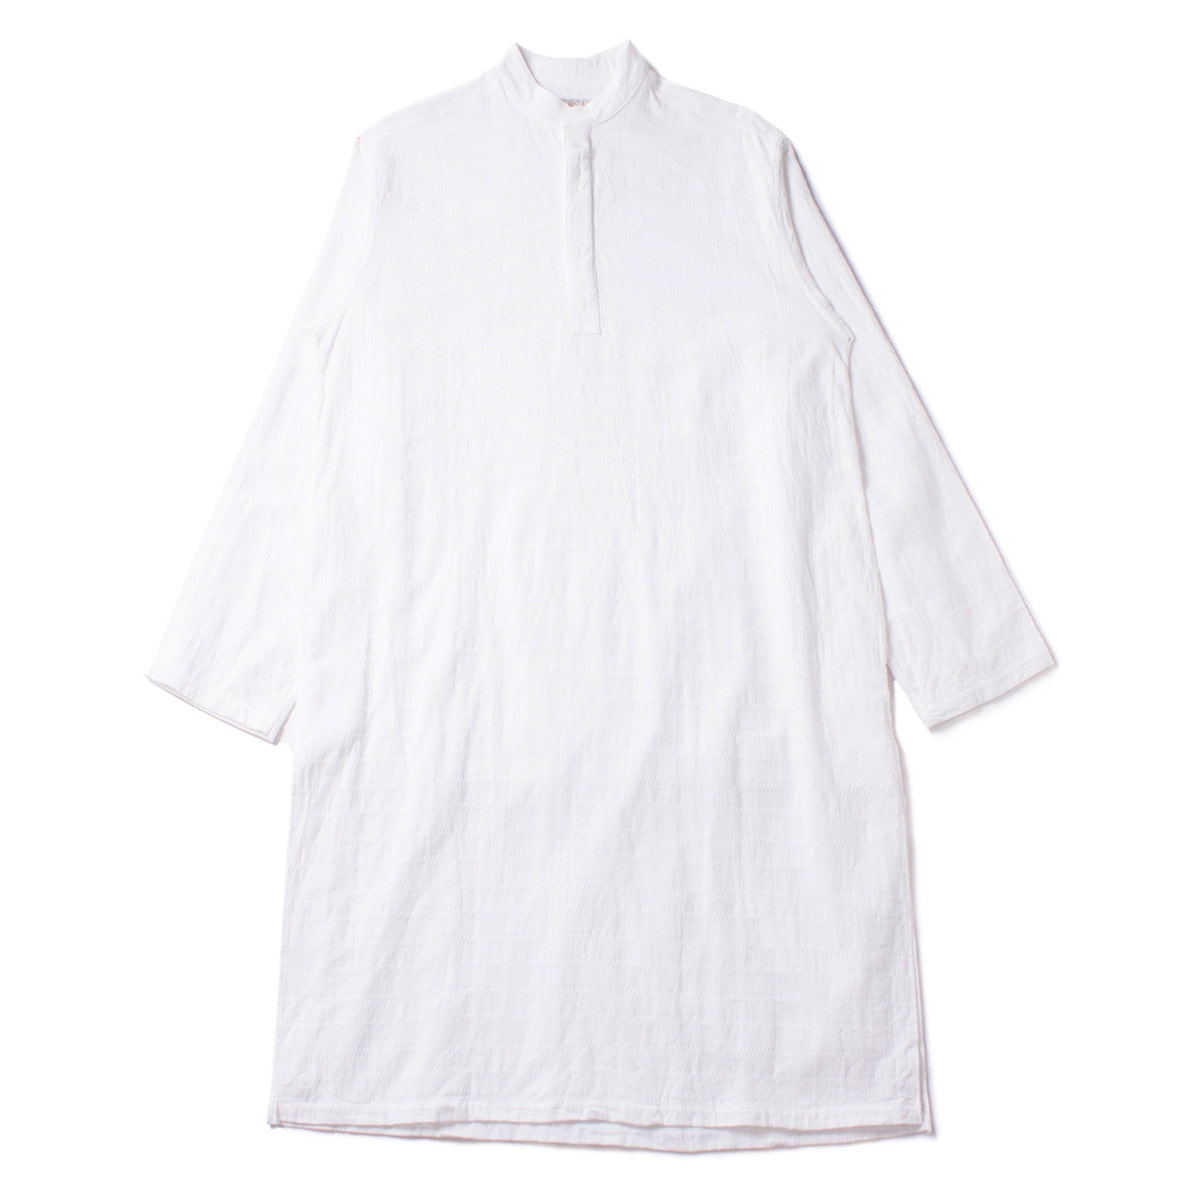 [HAVERSACK] DOBBY CLOTH SHIRT 'WHITE'